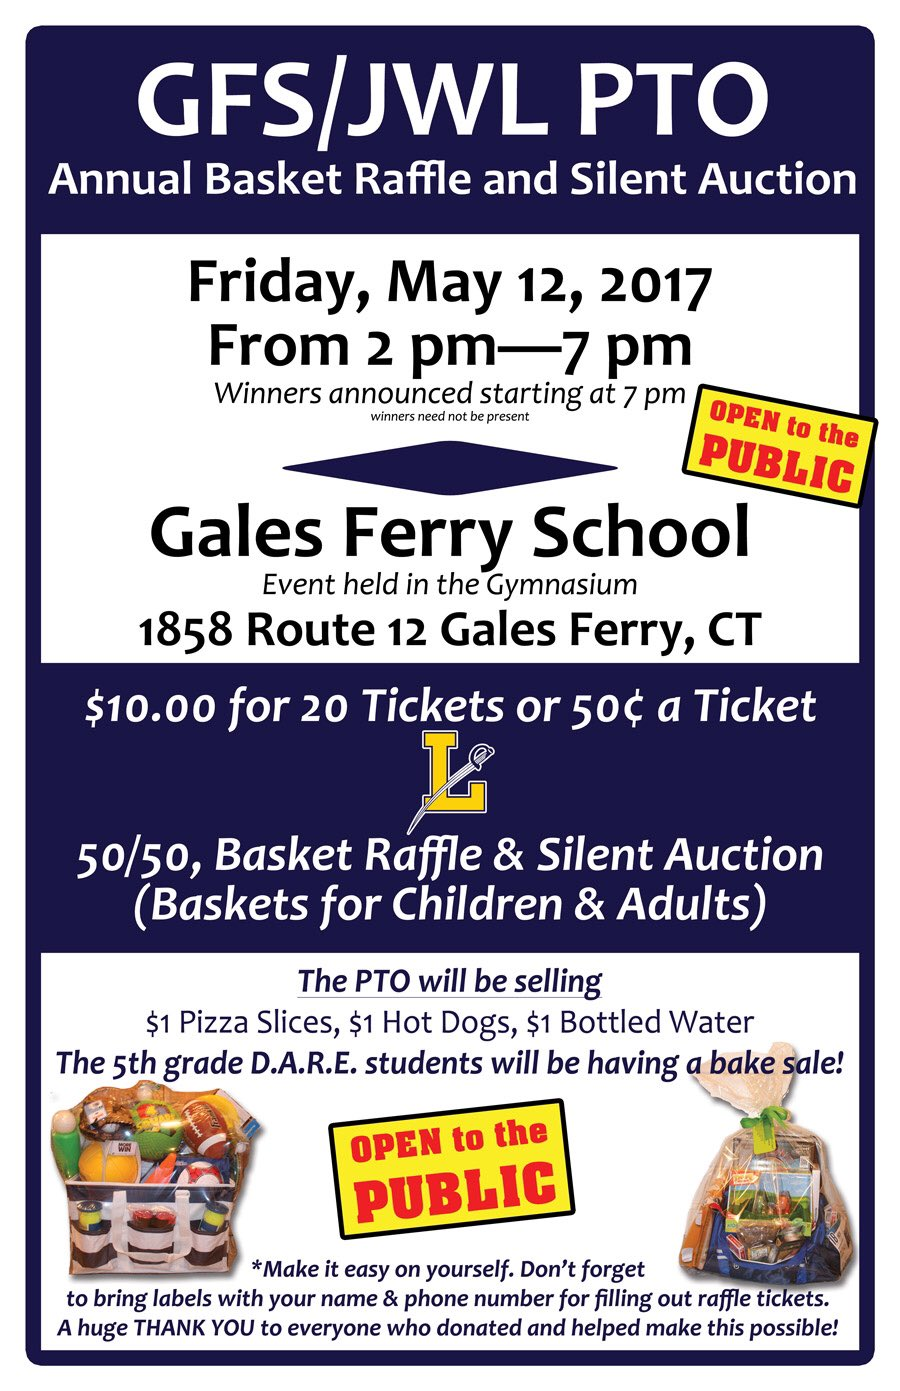 Join us for our annual basket raffle. #gfsjwl https://t.co/W2wYTB53iz